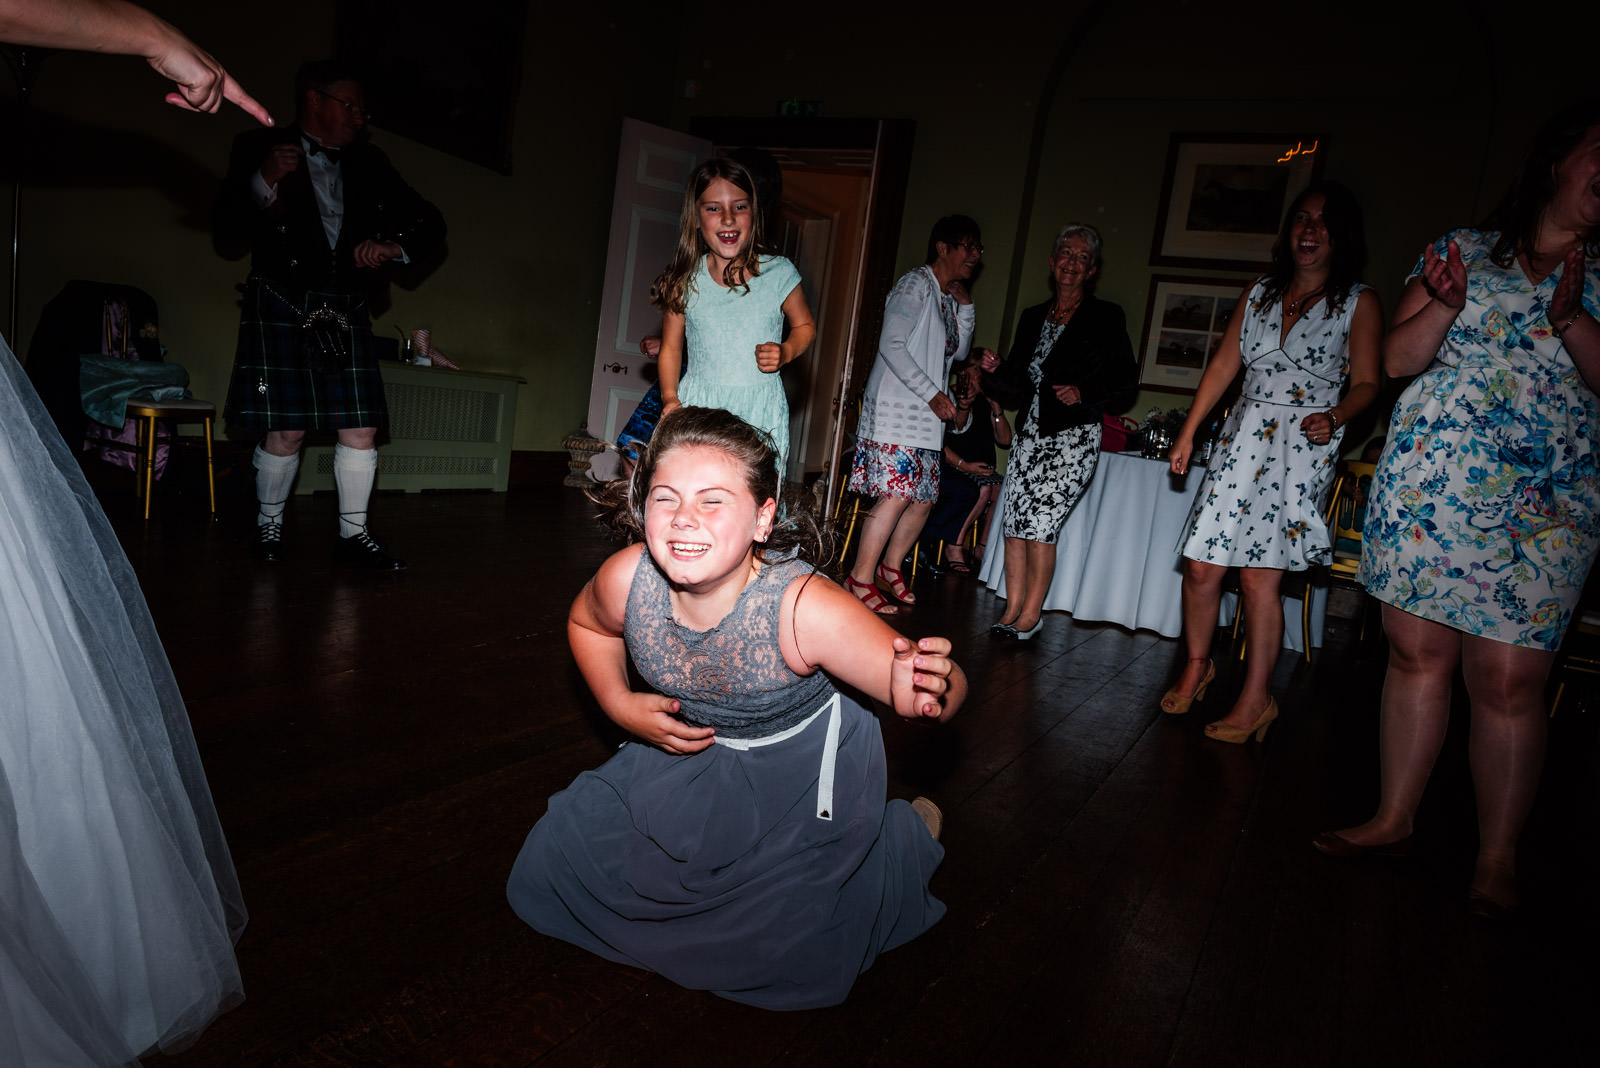 bridesmaid heading banging on the dance floor